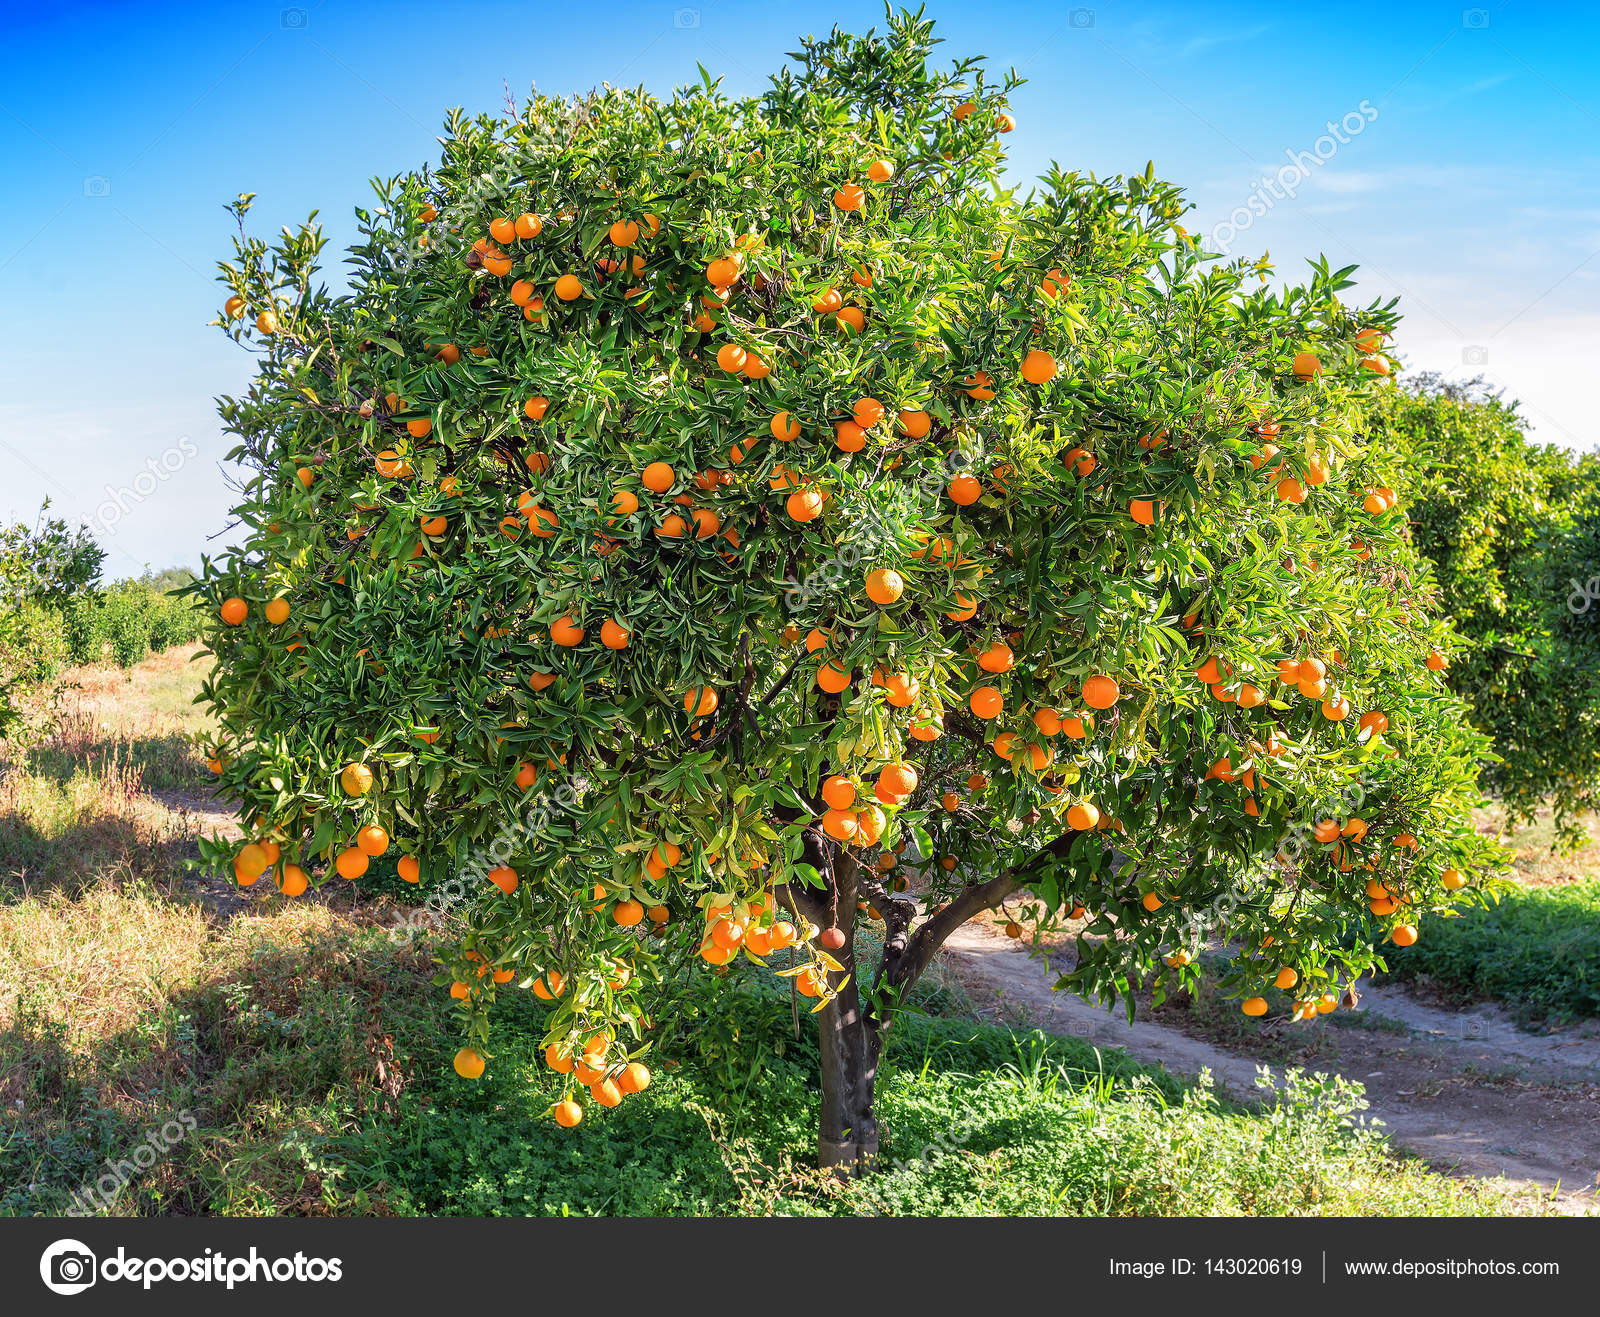 Lush Orange Tree Ripe Juicy Fruits Stock Photo